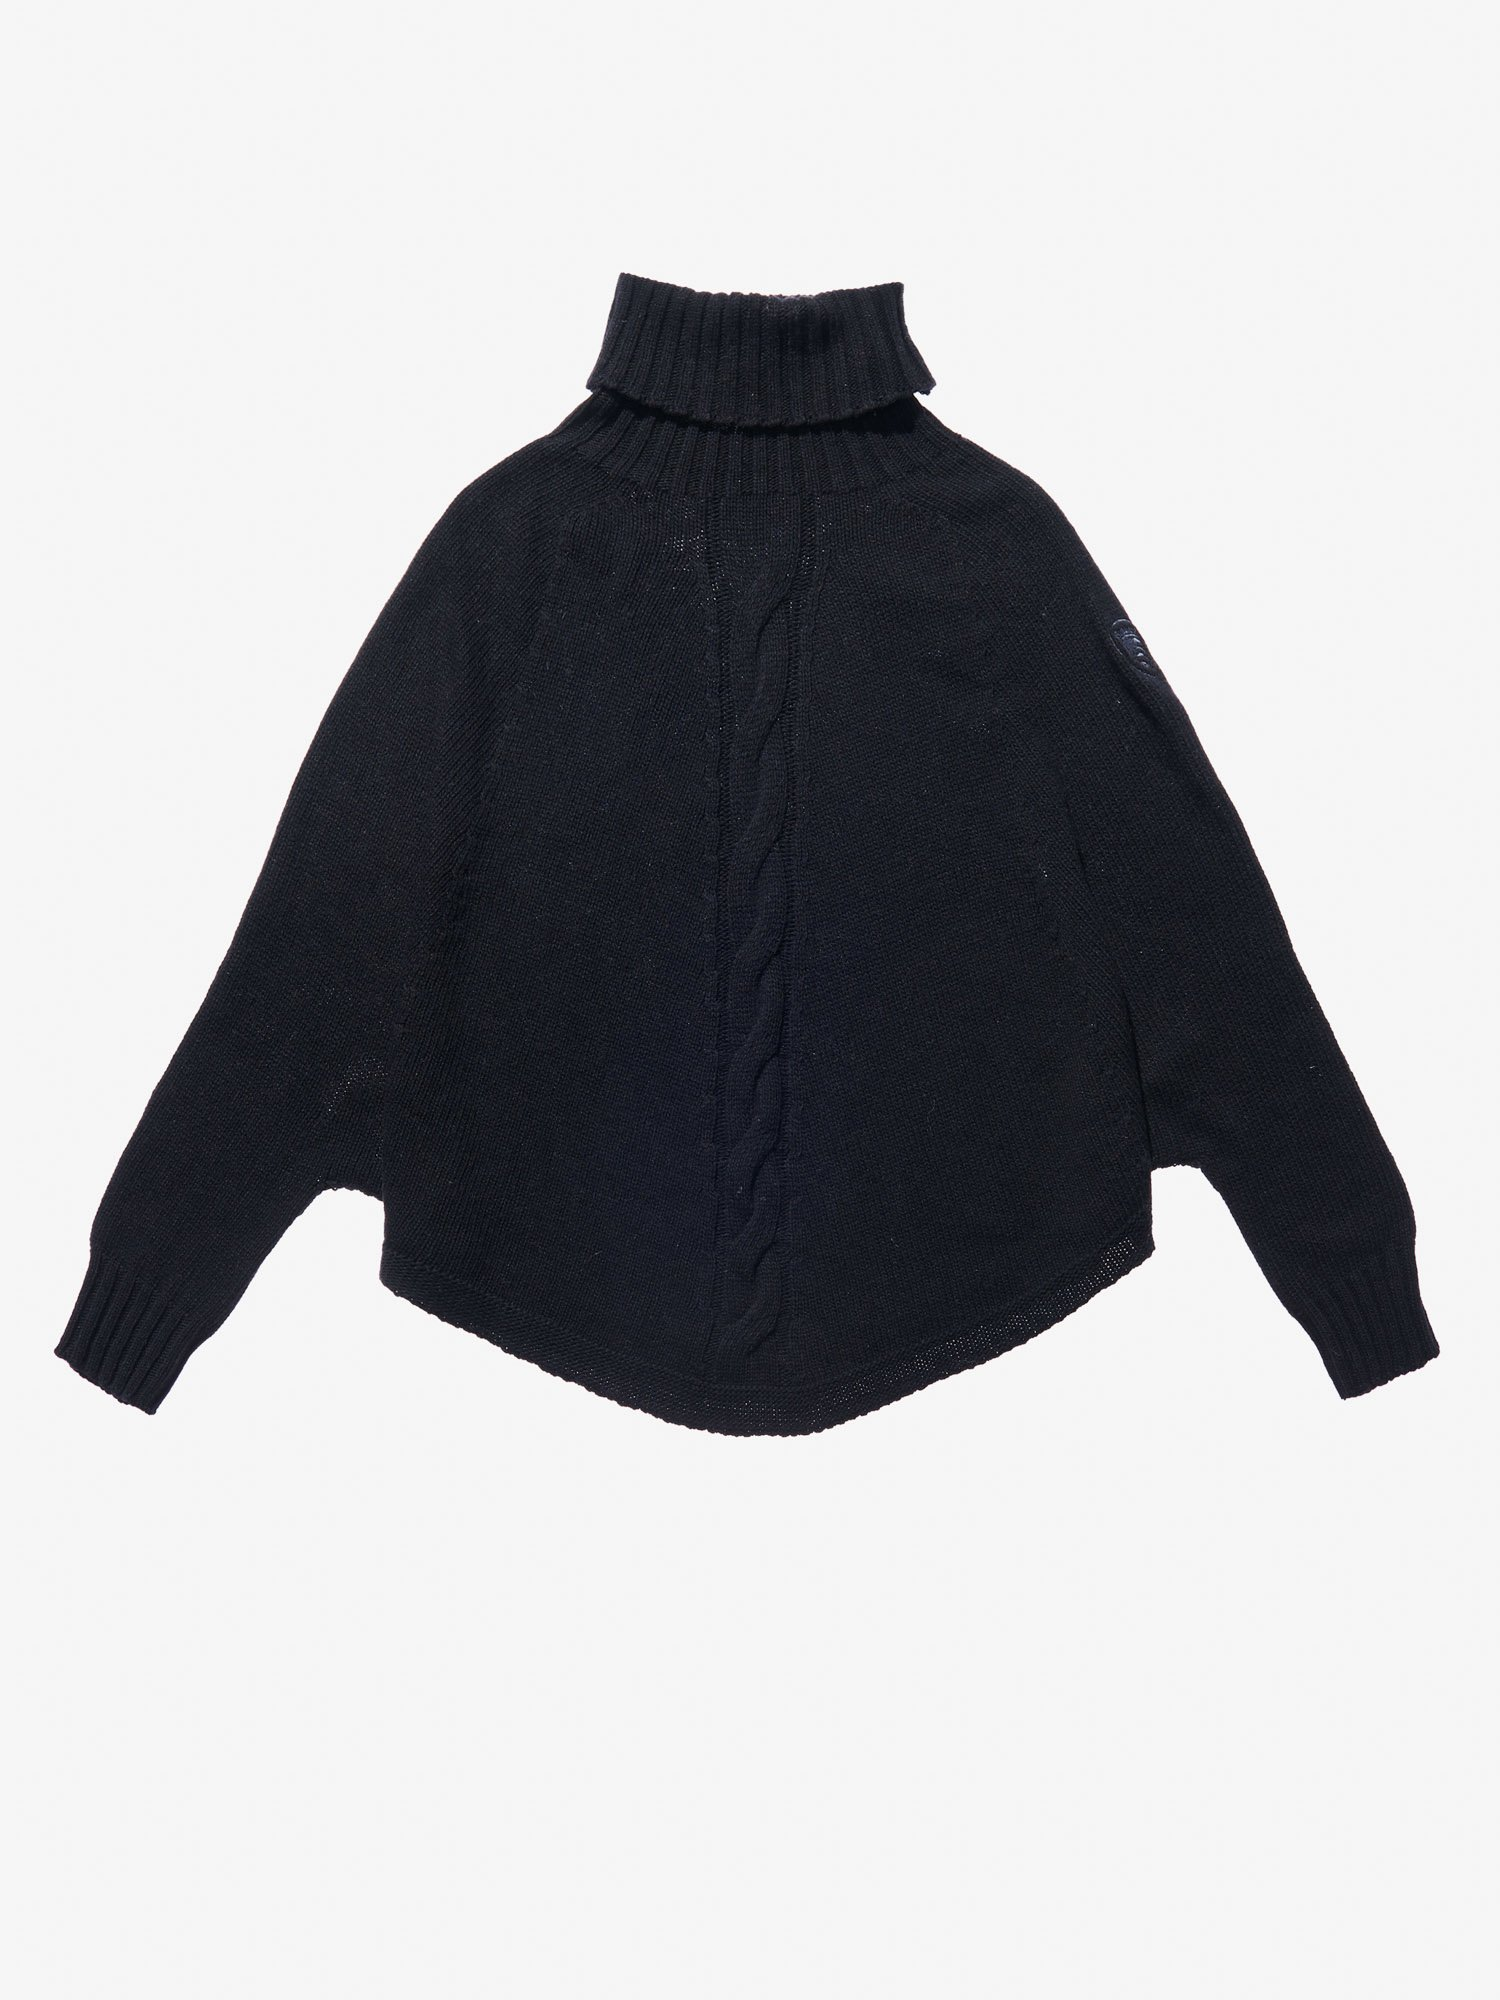 CAPE STYLE SWEATER - Blauer